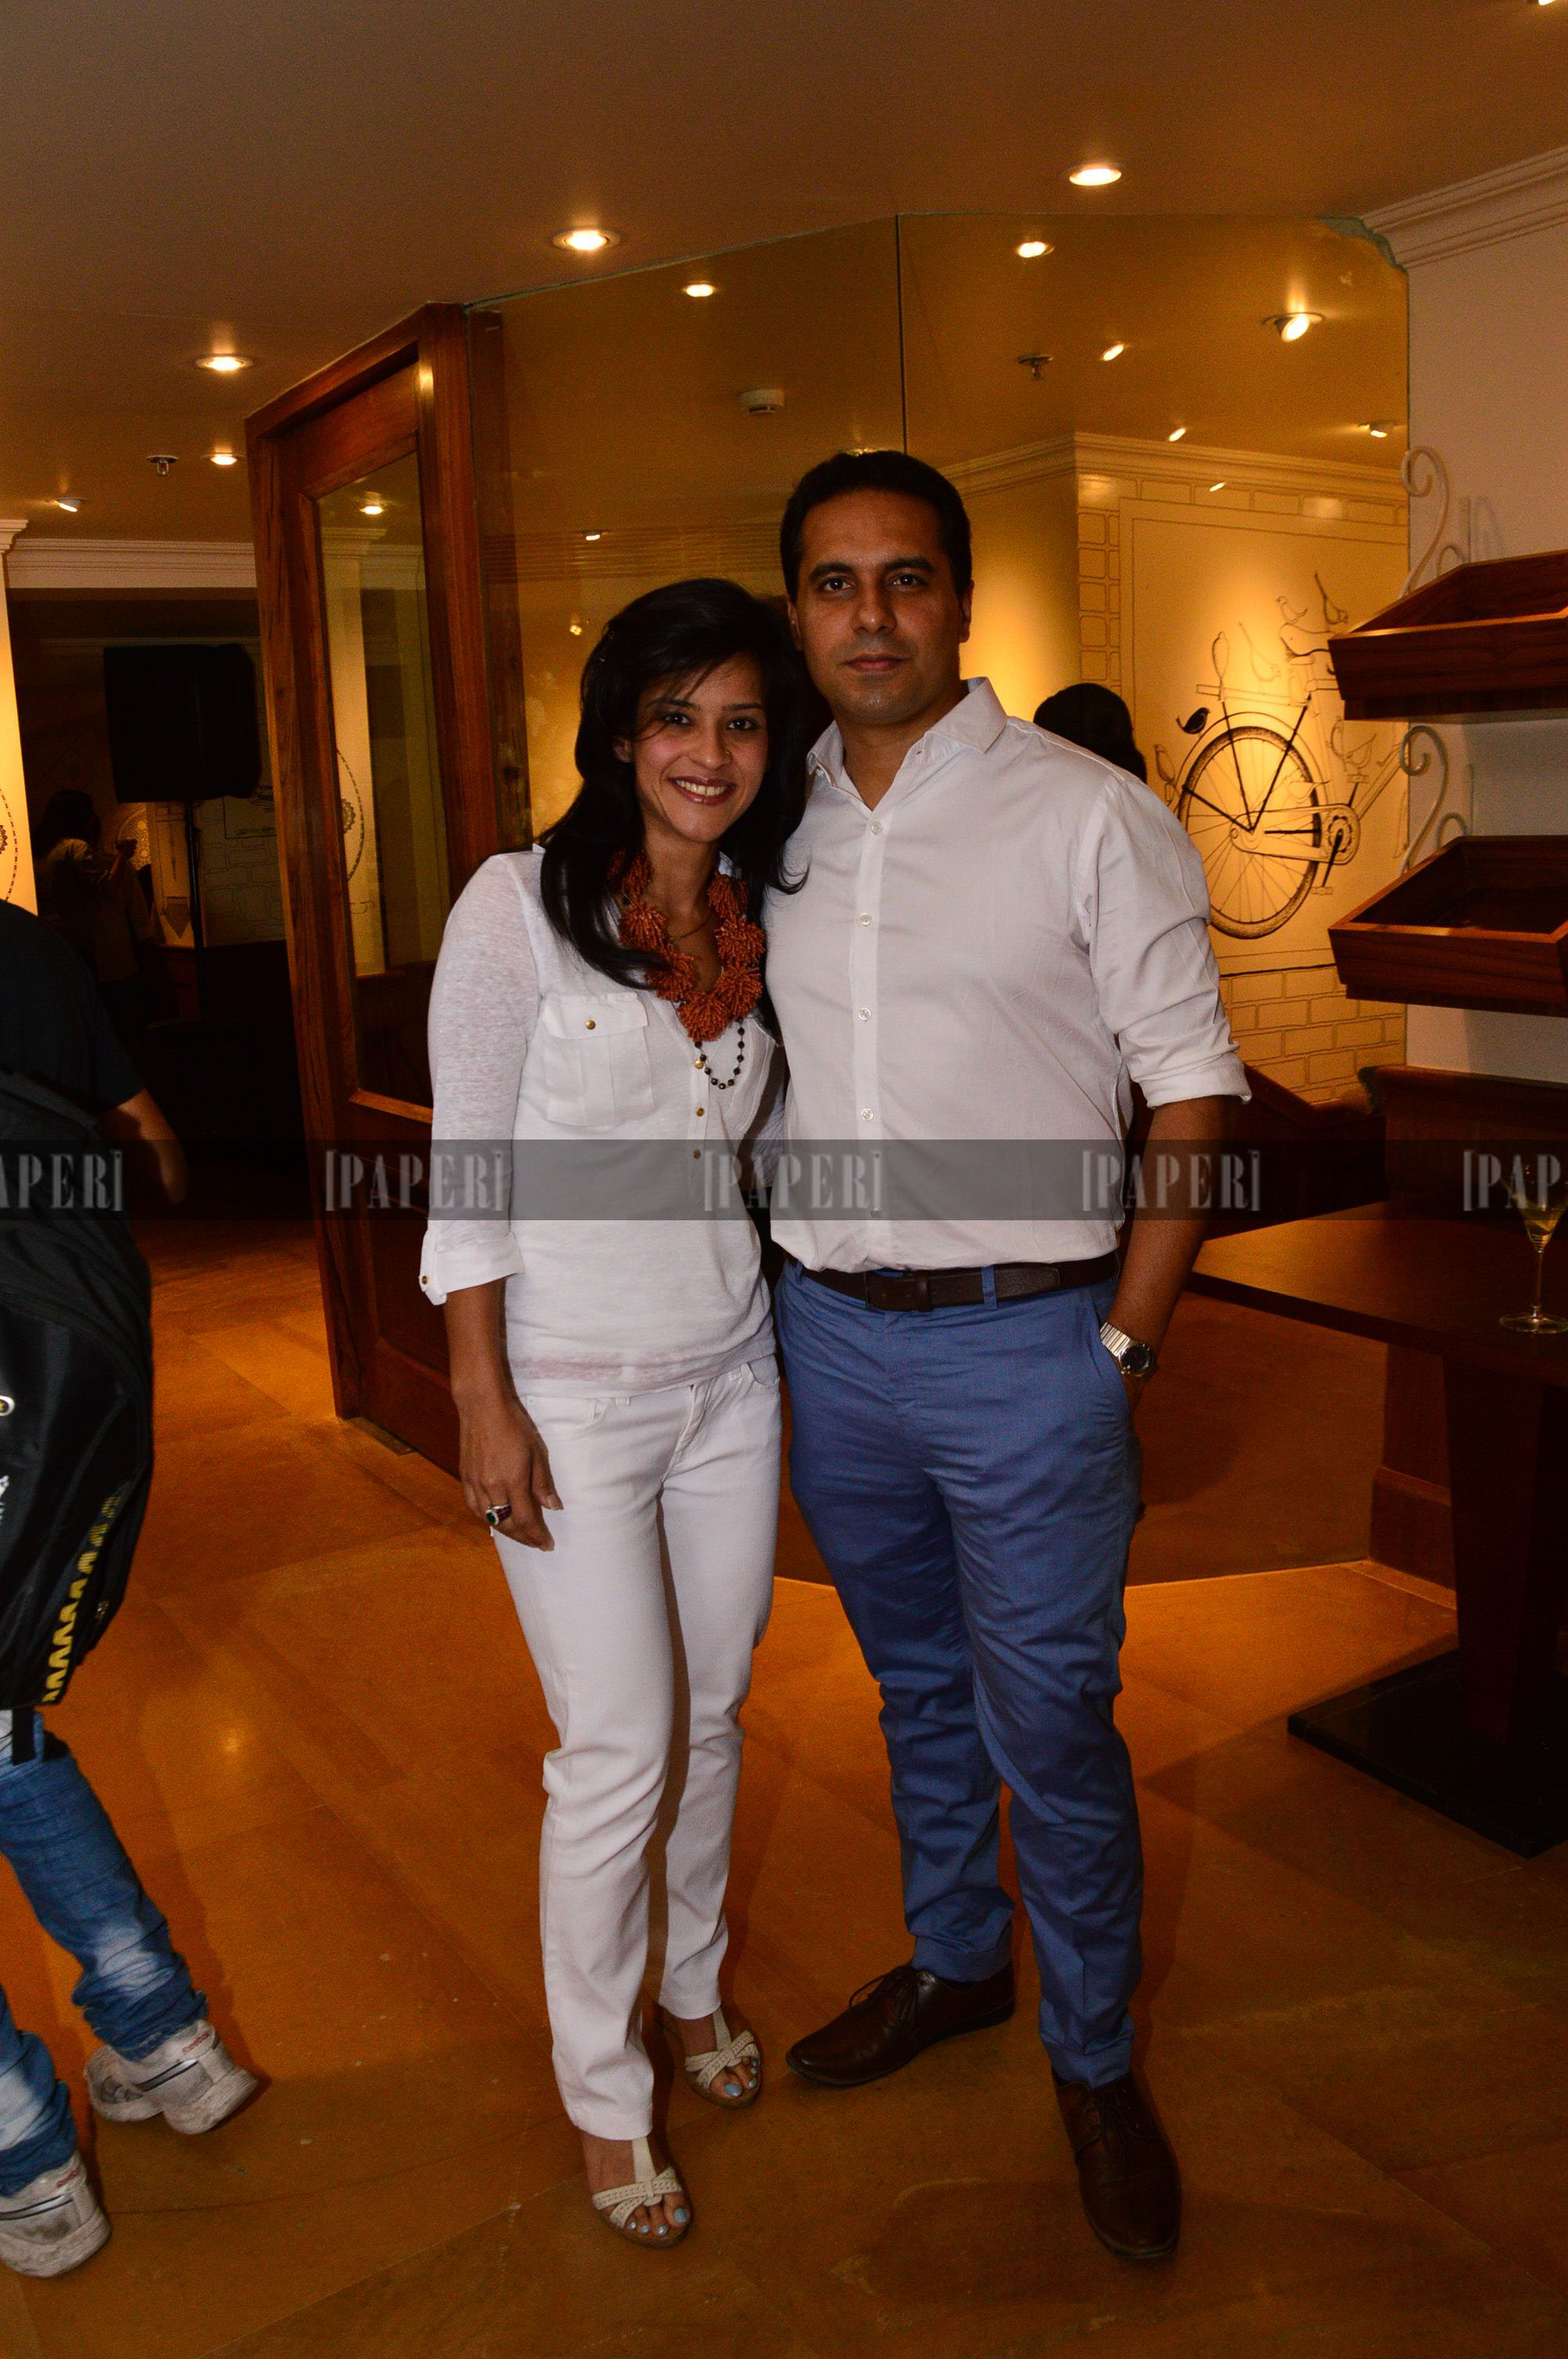 Shantanu and Reema Mehra